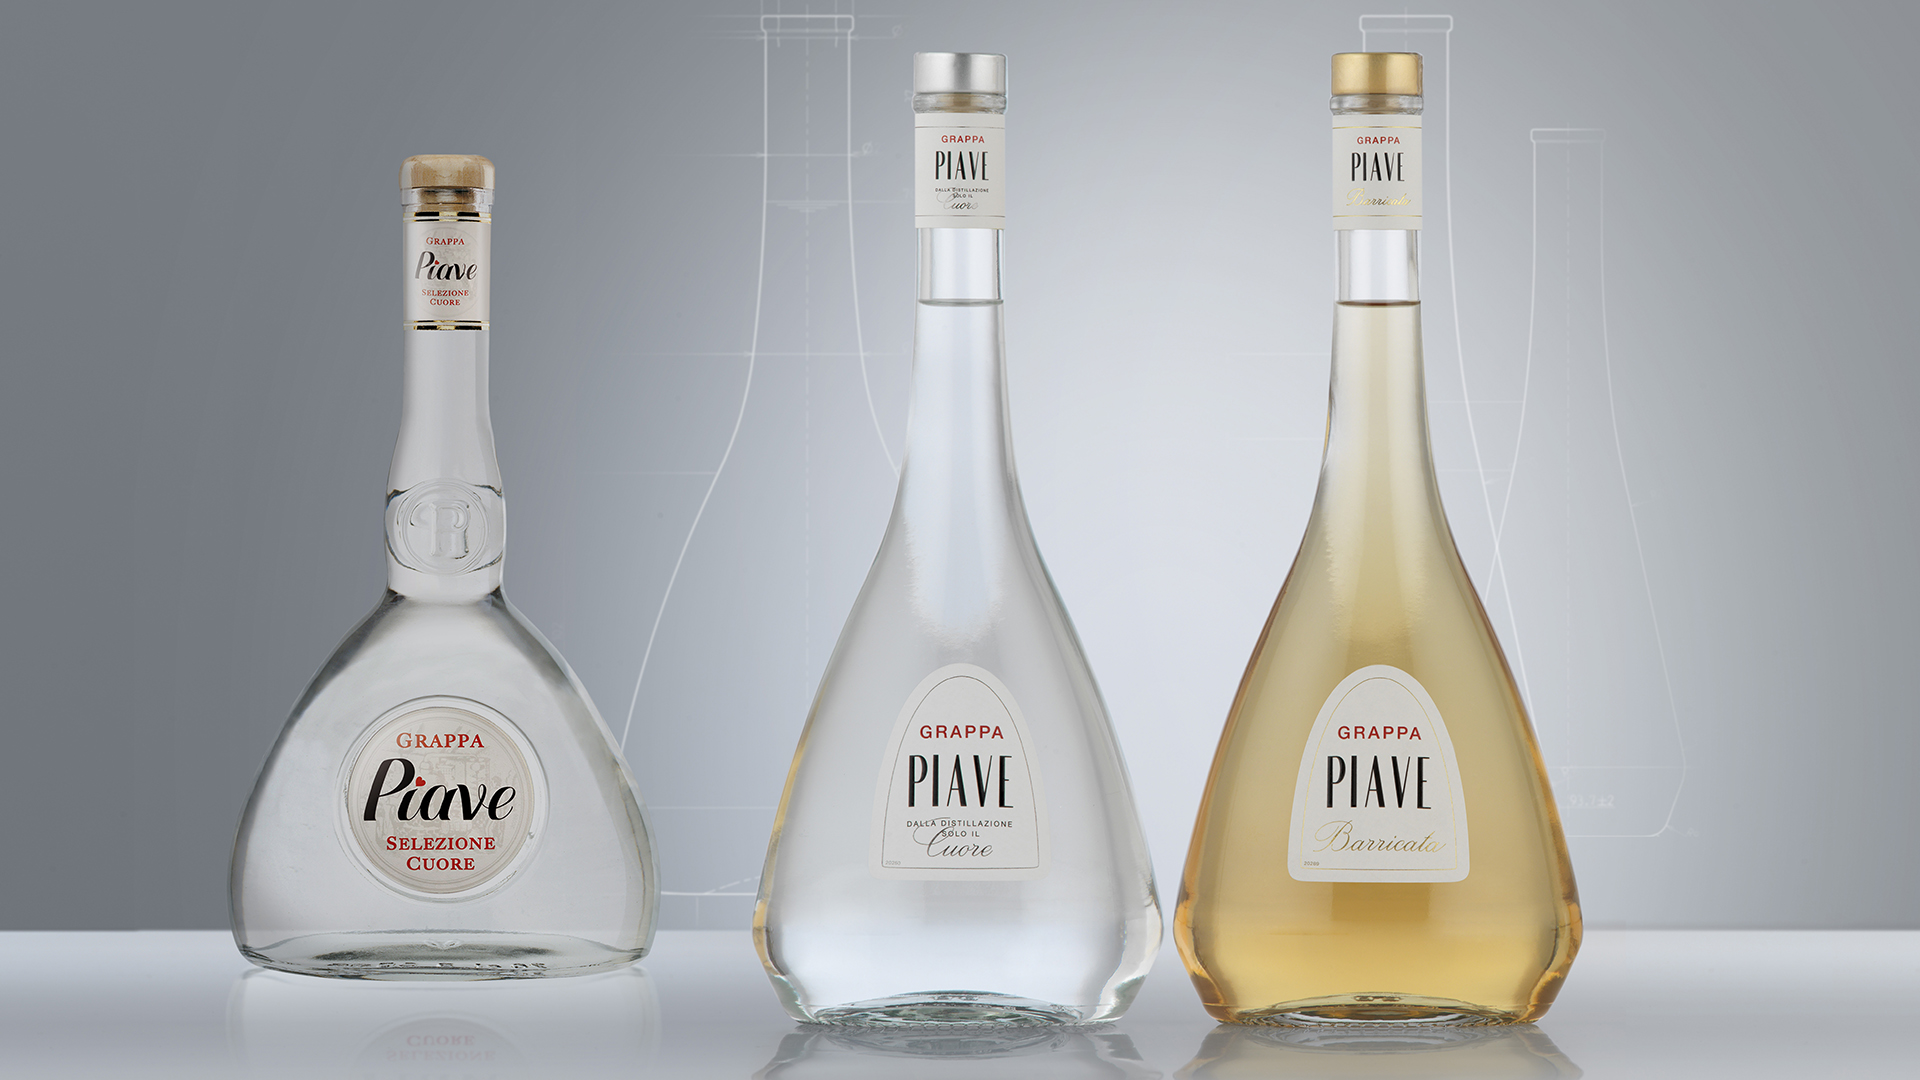 Distillerie Franciacorta Grappa Piave restyling